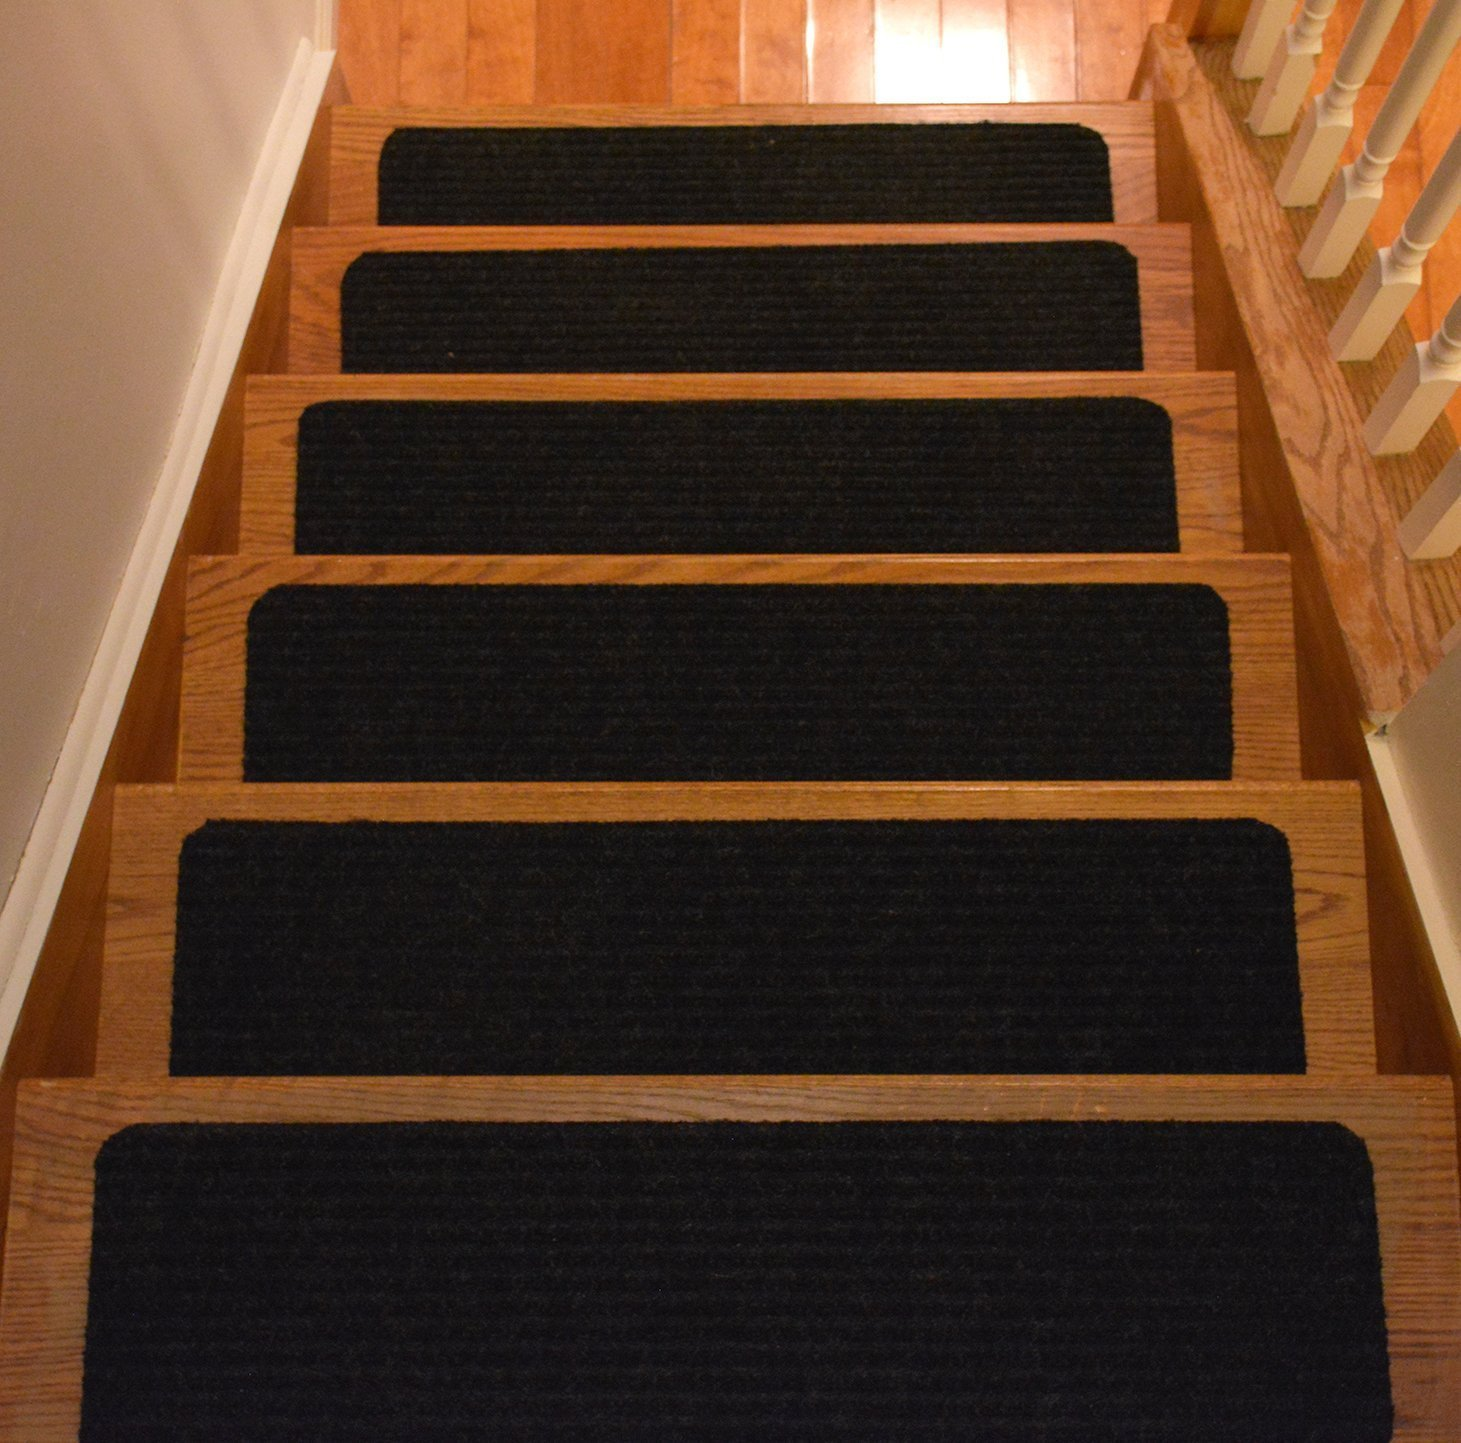 Stair Treads Collection Set of 13 Indoor Skid Slip Resistant Carpet Stair Tread Treads Black (8 Inch x 30 Inch) (Black, Set of 13)